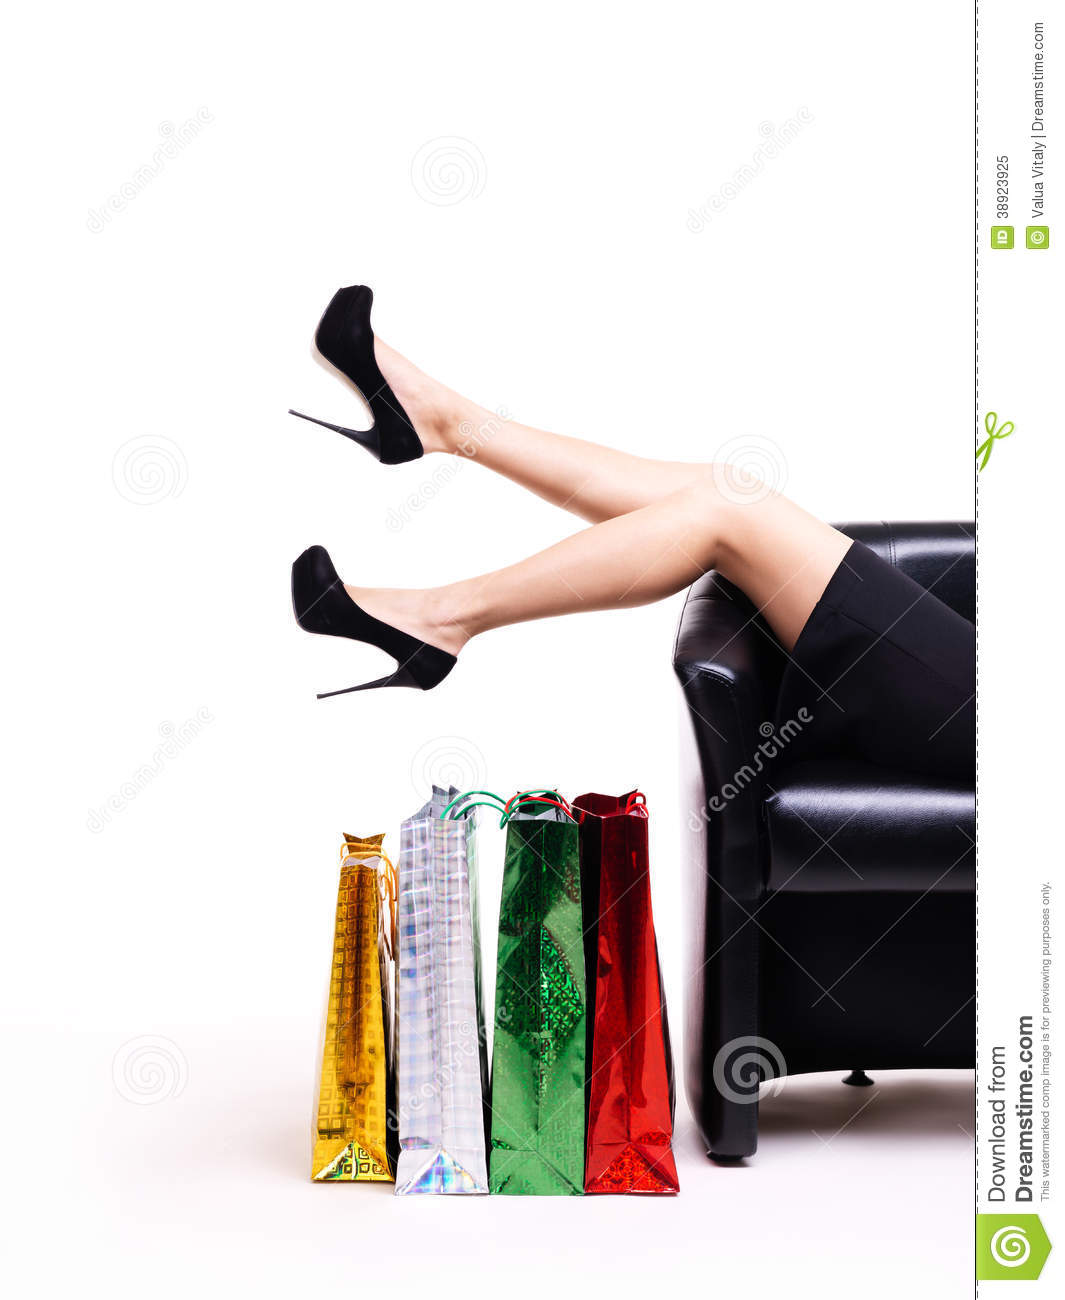 Elegant Woman In Black Dress With Shopping Bags Stock